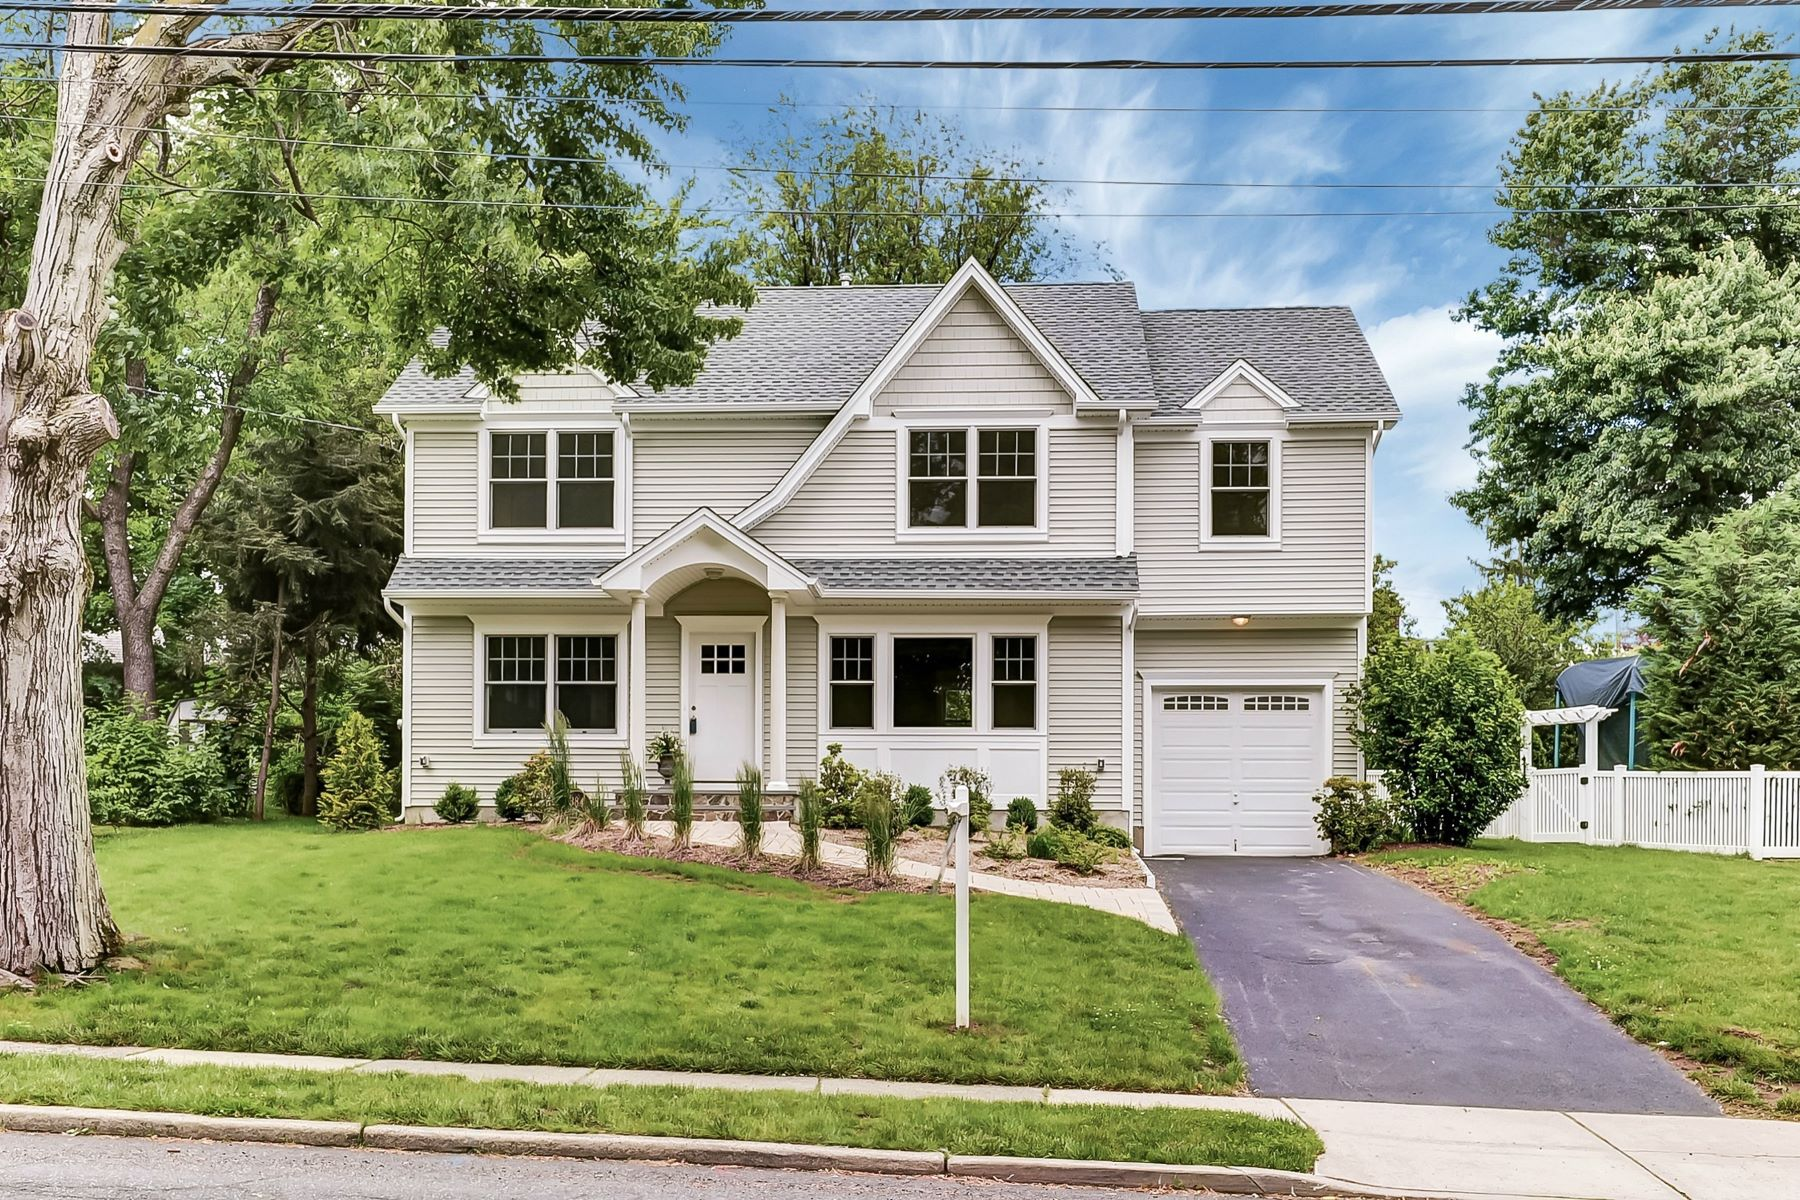 Single Family Home for Sale at Your Search Is Over 384 Boulevard Glen Rock, New Jersey 07452 United States